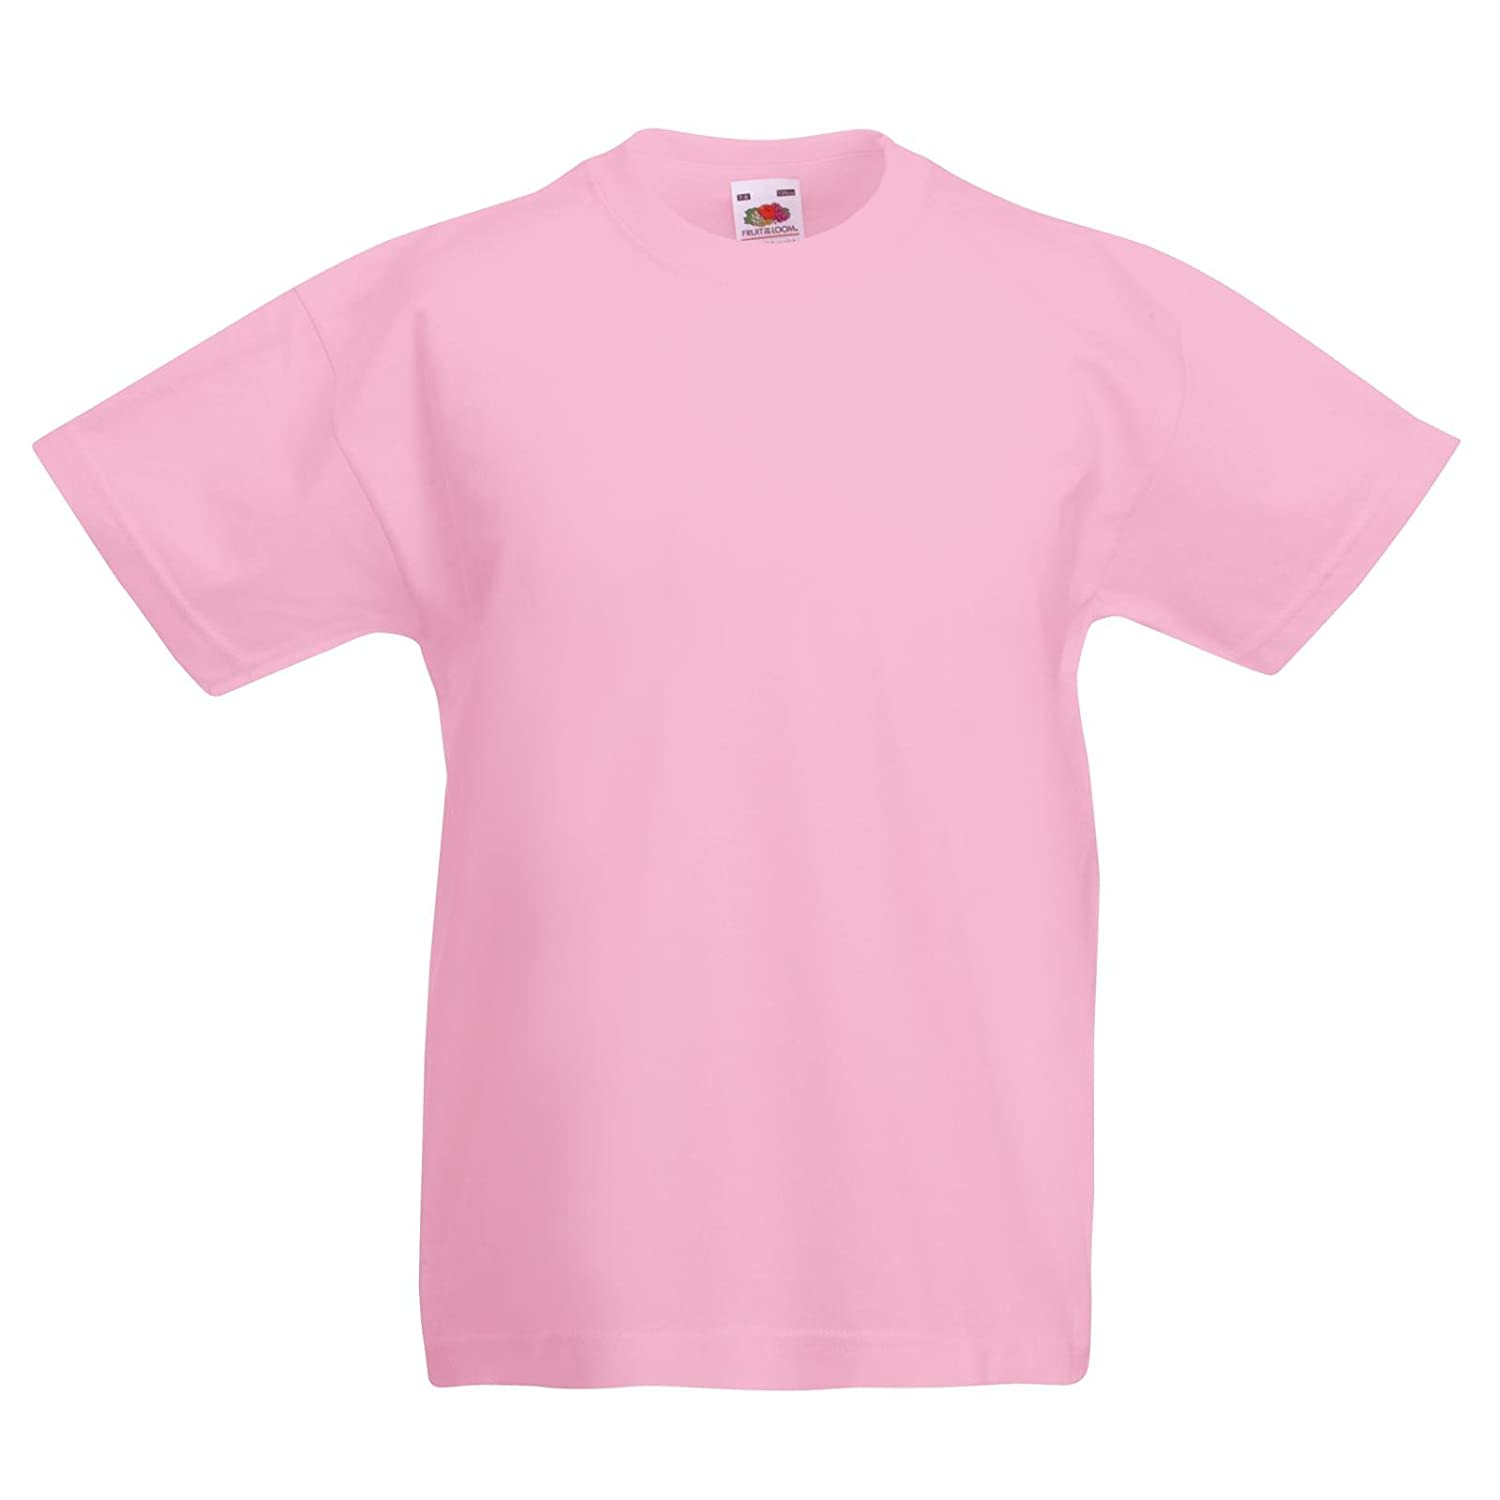 6cf608f84 New Fruit of the Loom Childrens Kids Value Cotton T Shirt: Amazon.co.uk:  Clothing